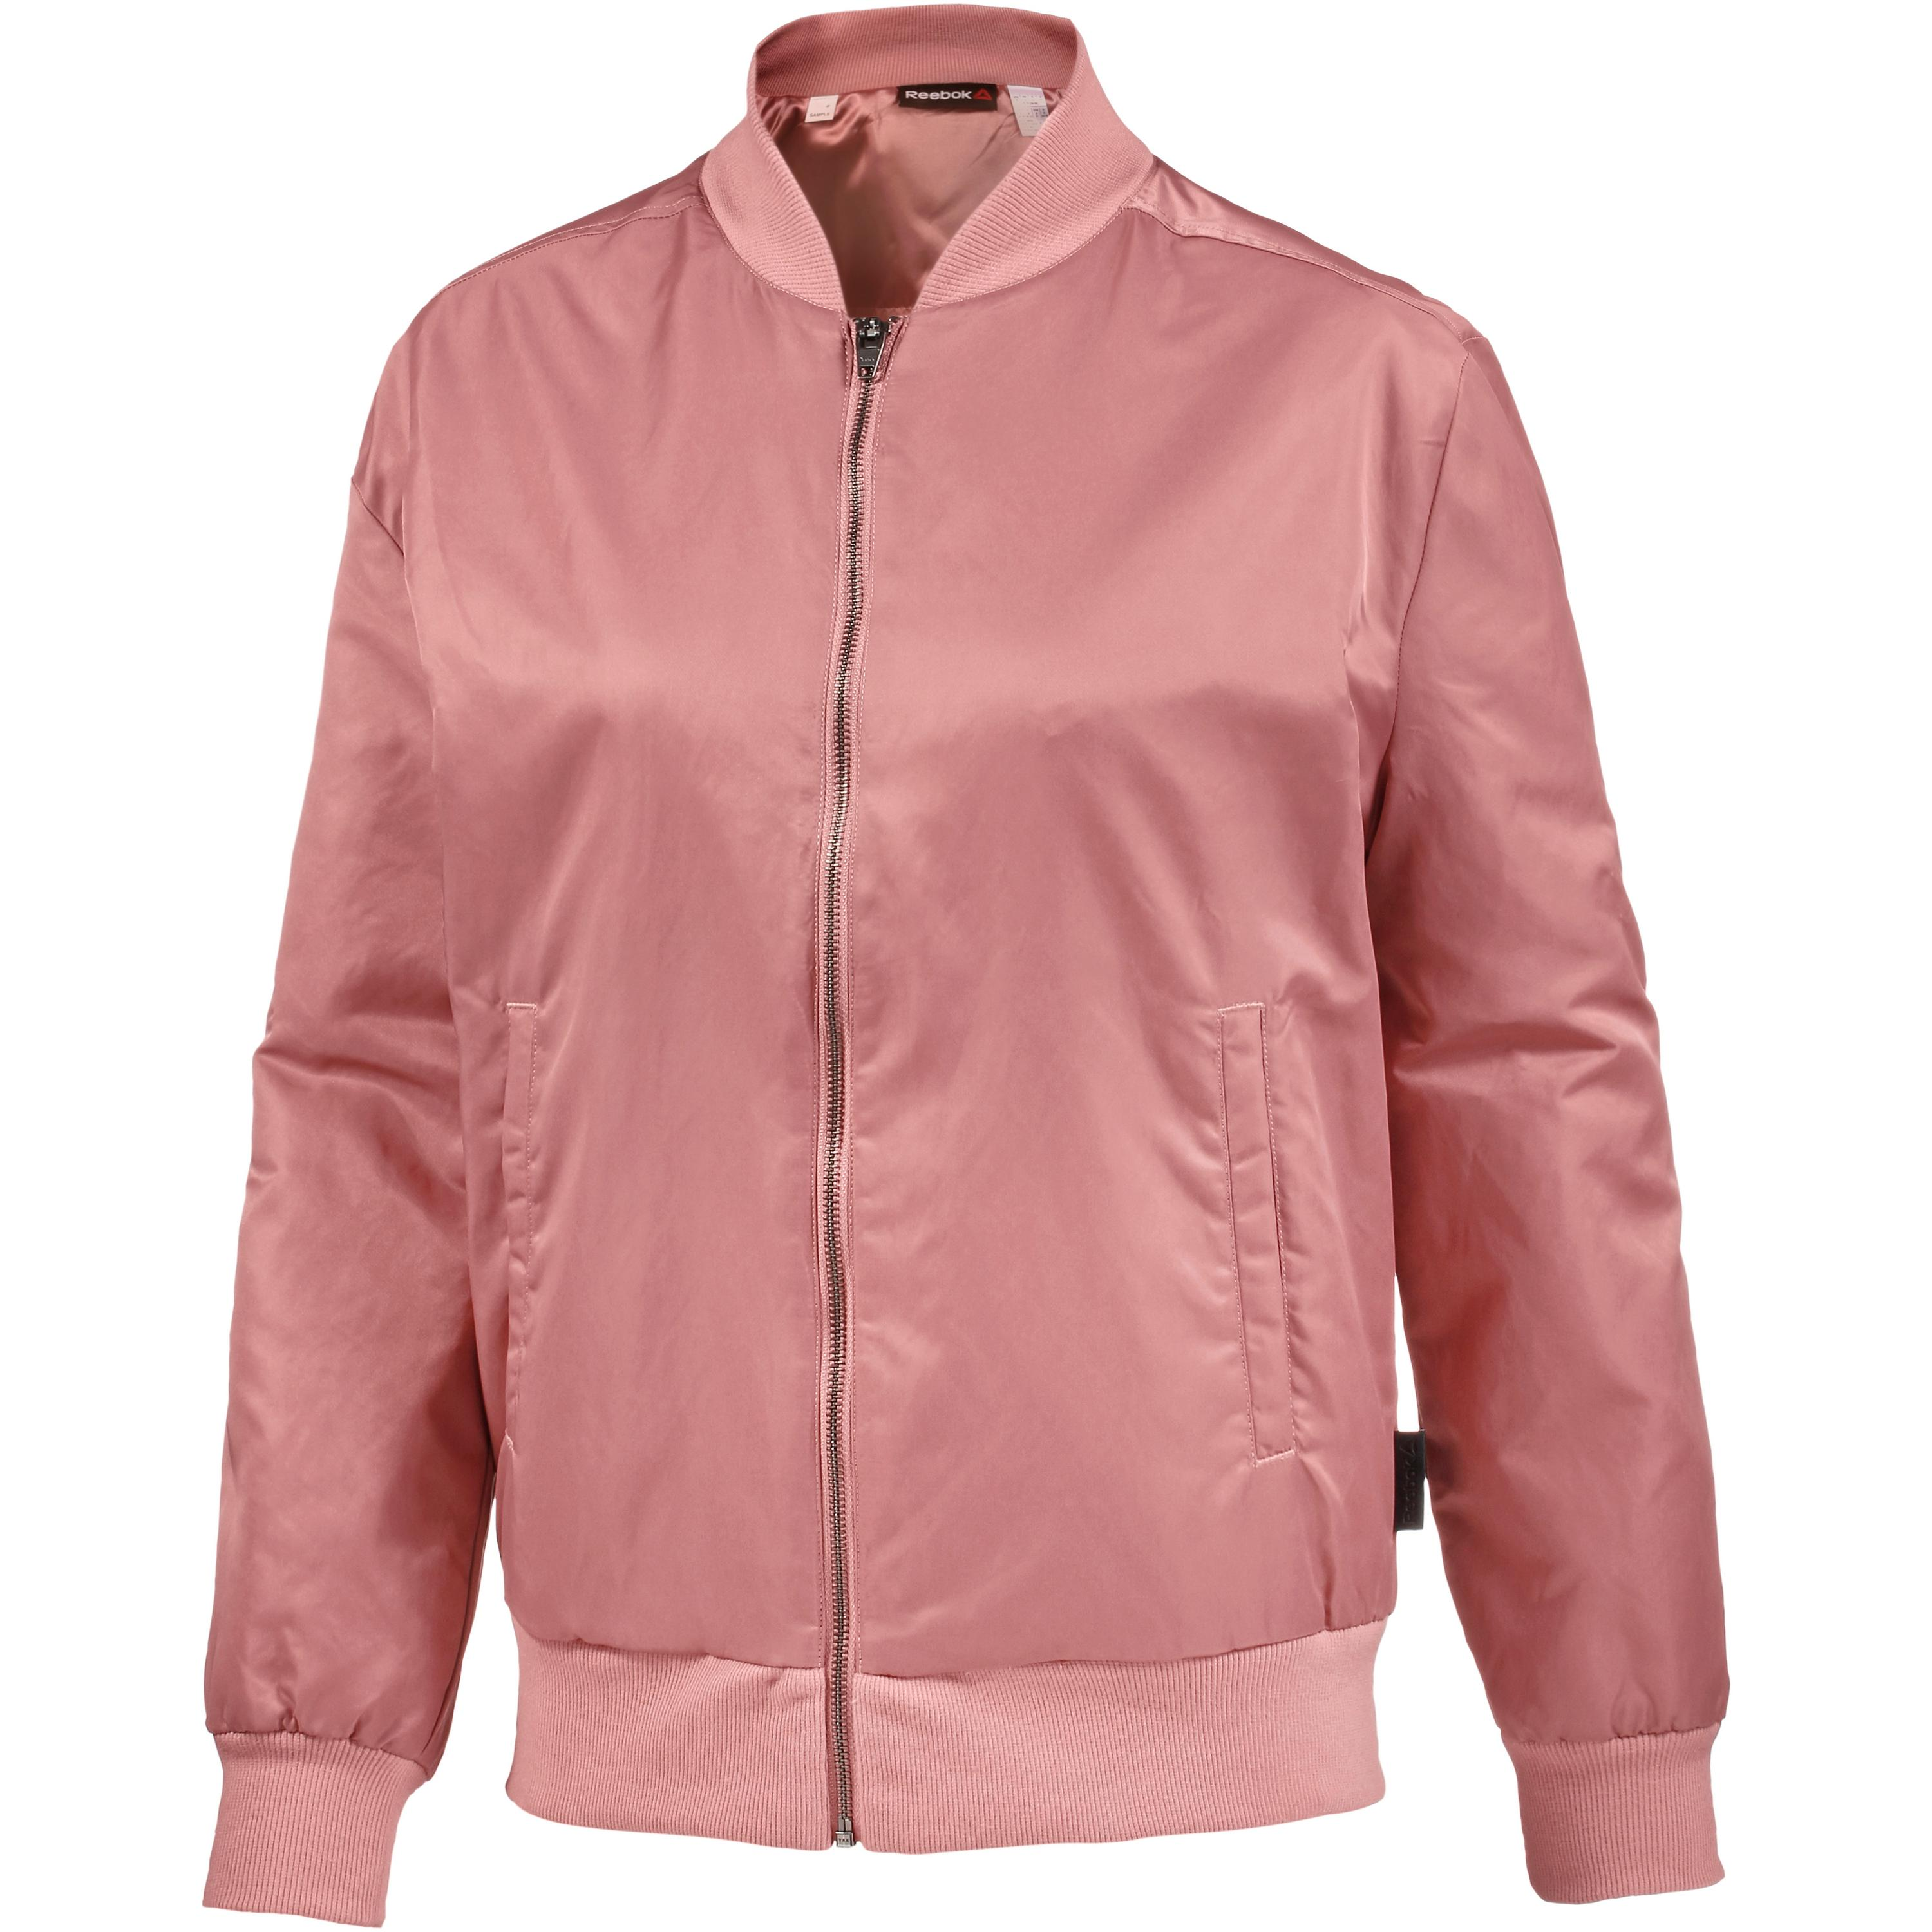 Reebok Favorite Sweatjacke Damen